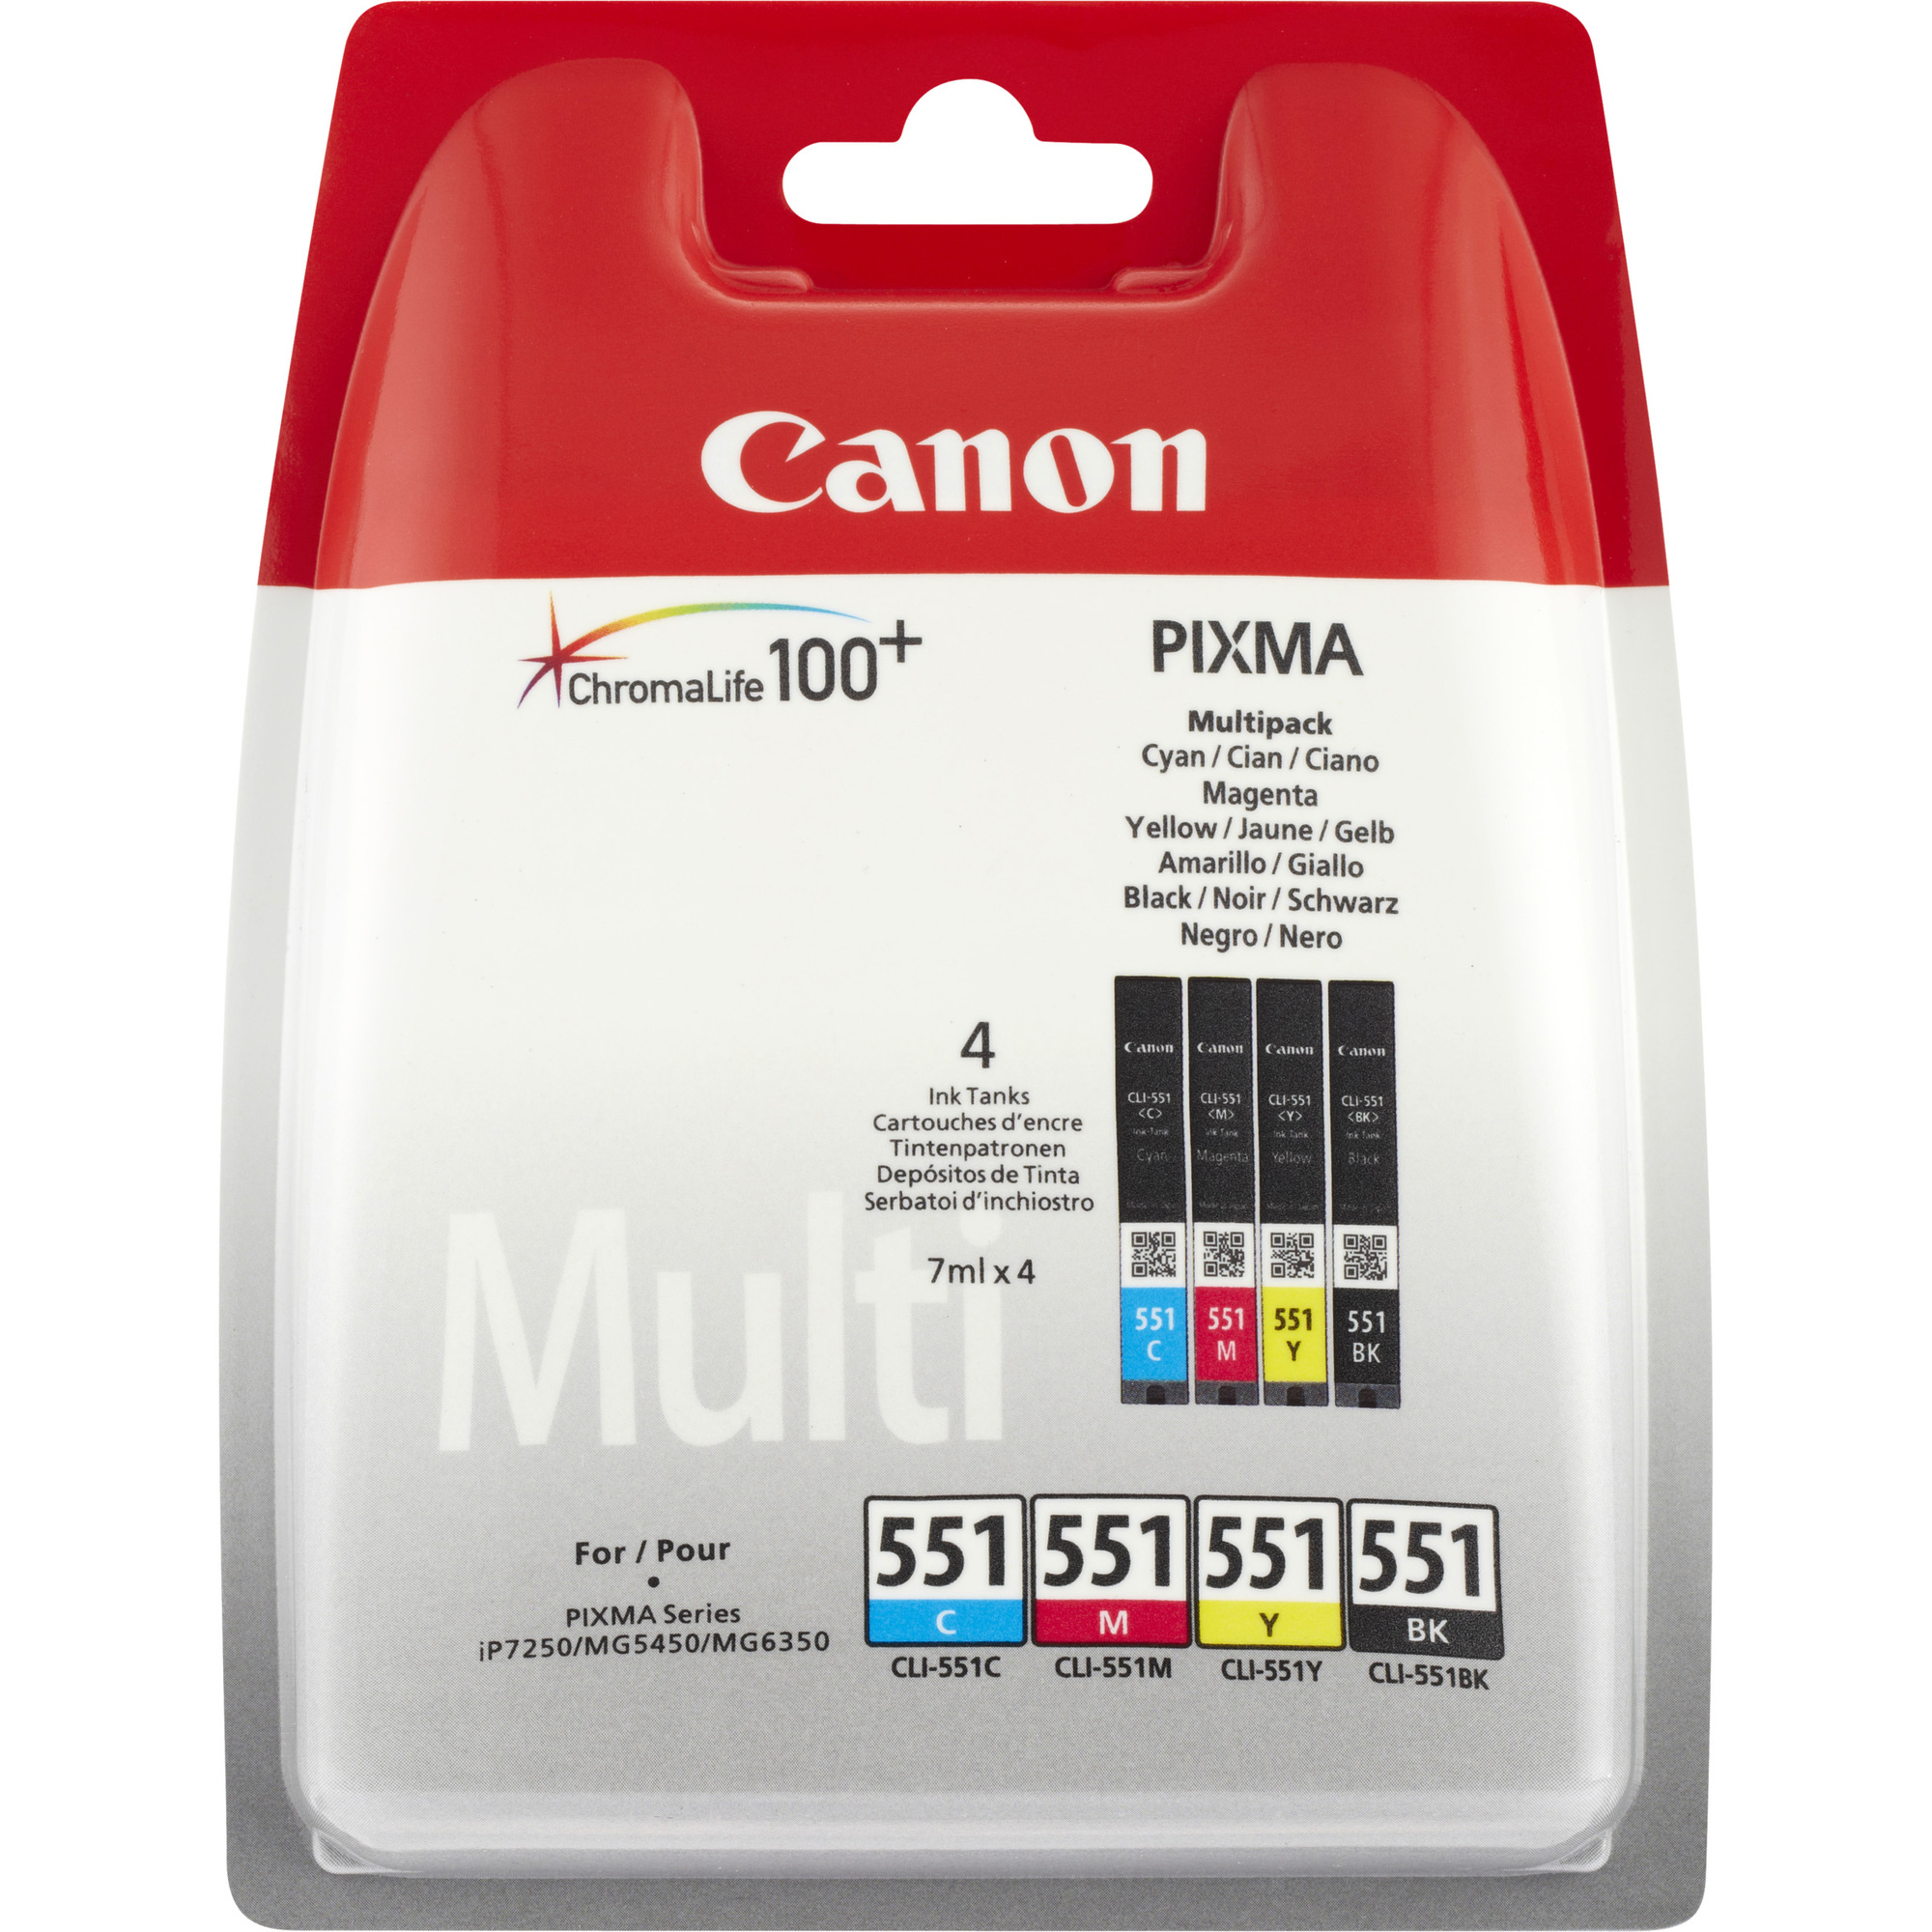 Canon CLI-551 Ink Cartridge - Black, Cyan, Magenta, Yellow